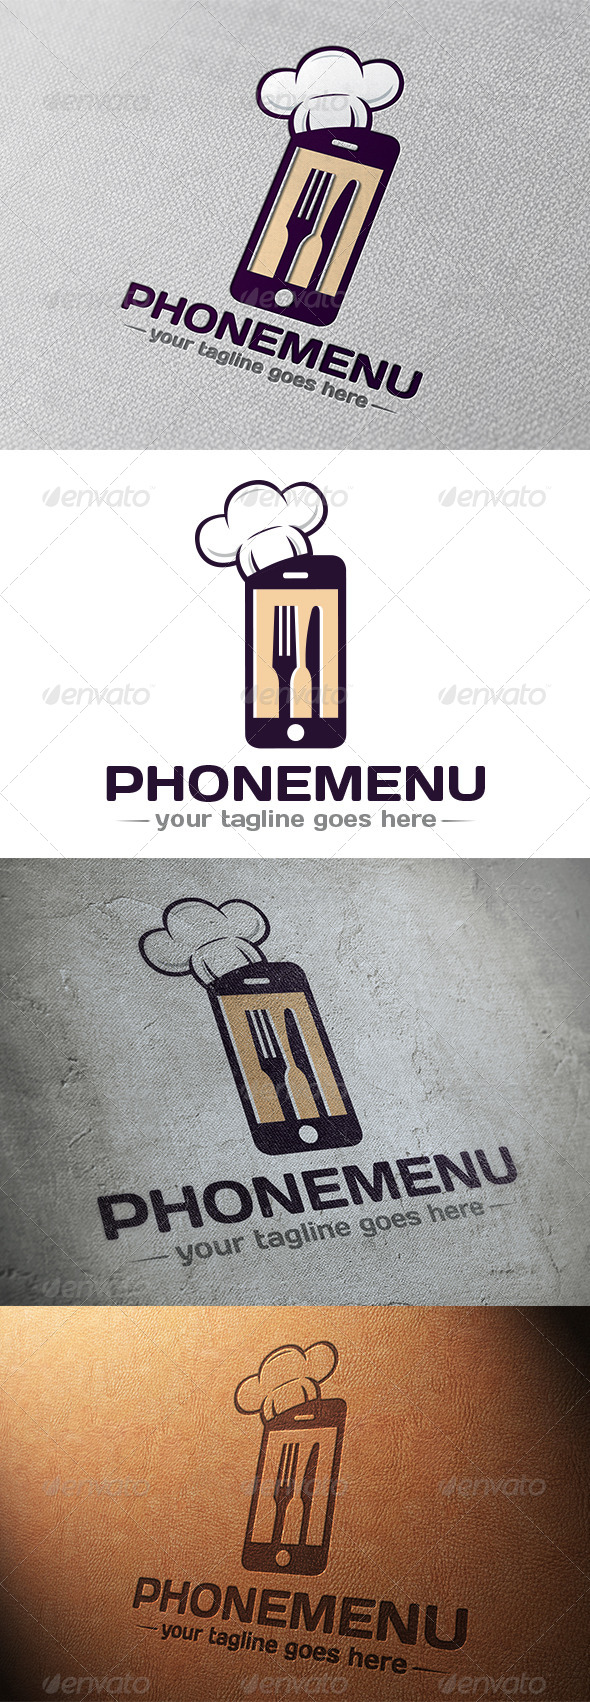 Phone Restaurant App Logo - Objects Logo Templates